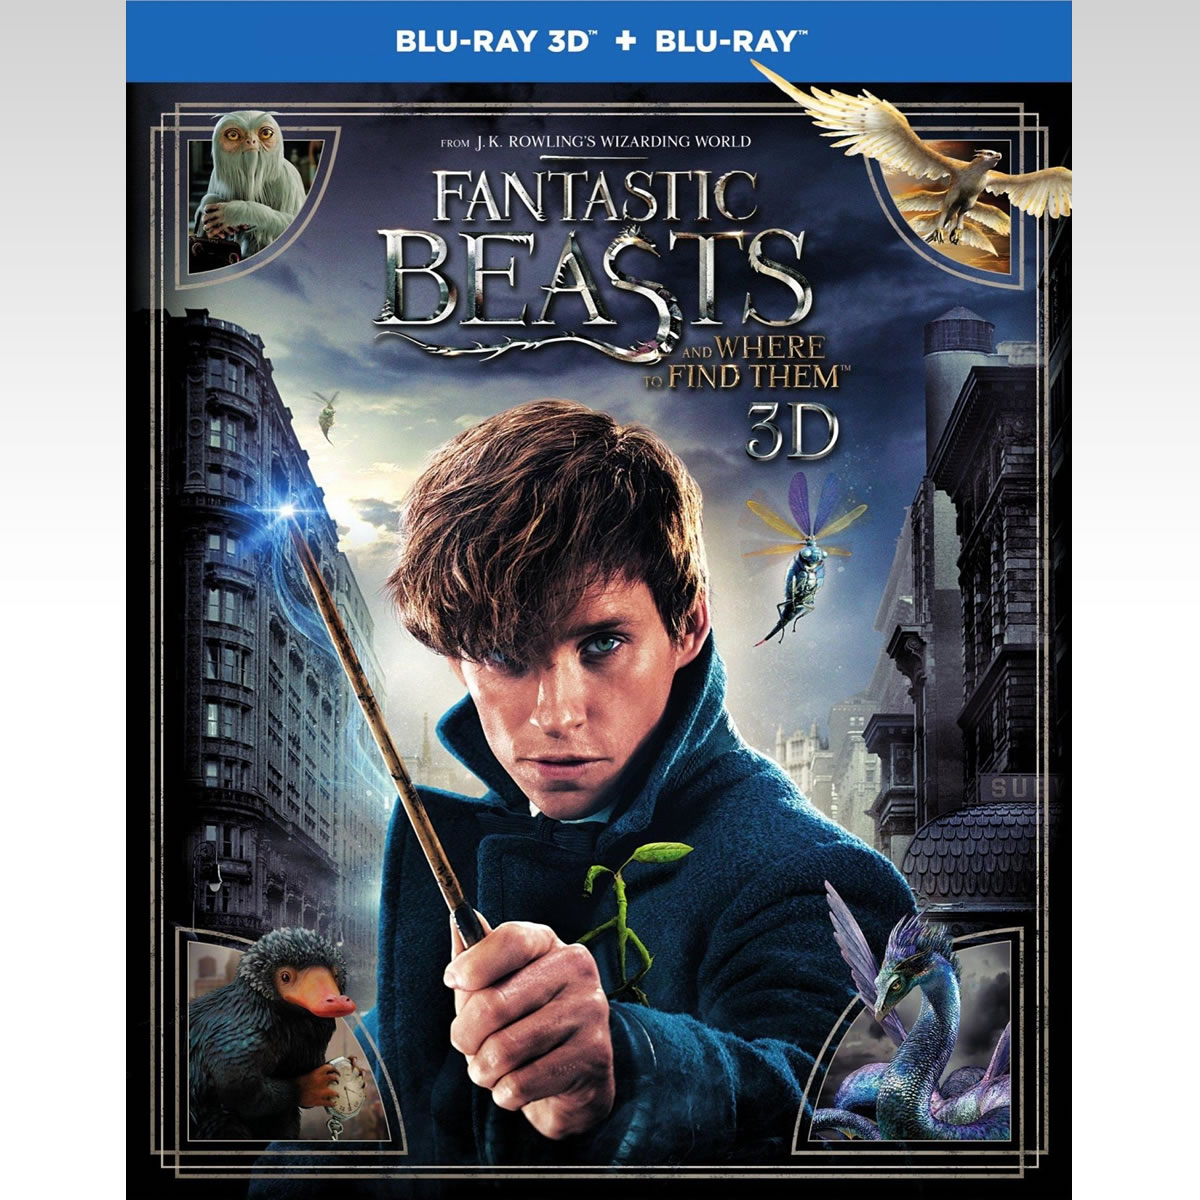 FANTASTIC BEASTS AND WHERE TO FIND THEM - ΦΑΝΤΑΣΤΙΚΑ ΖΩΑ ΚΑΙ ΠΟΥ ΒΡΙΣΚΟΝΤΑΙ (BLU-RAY 3D/2D)